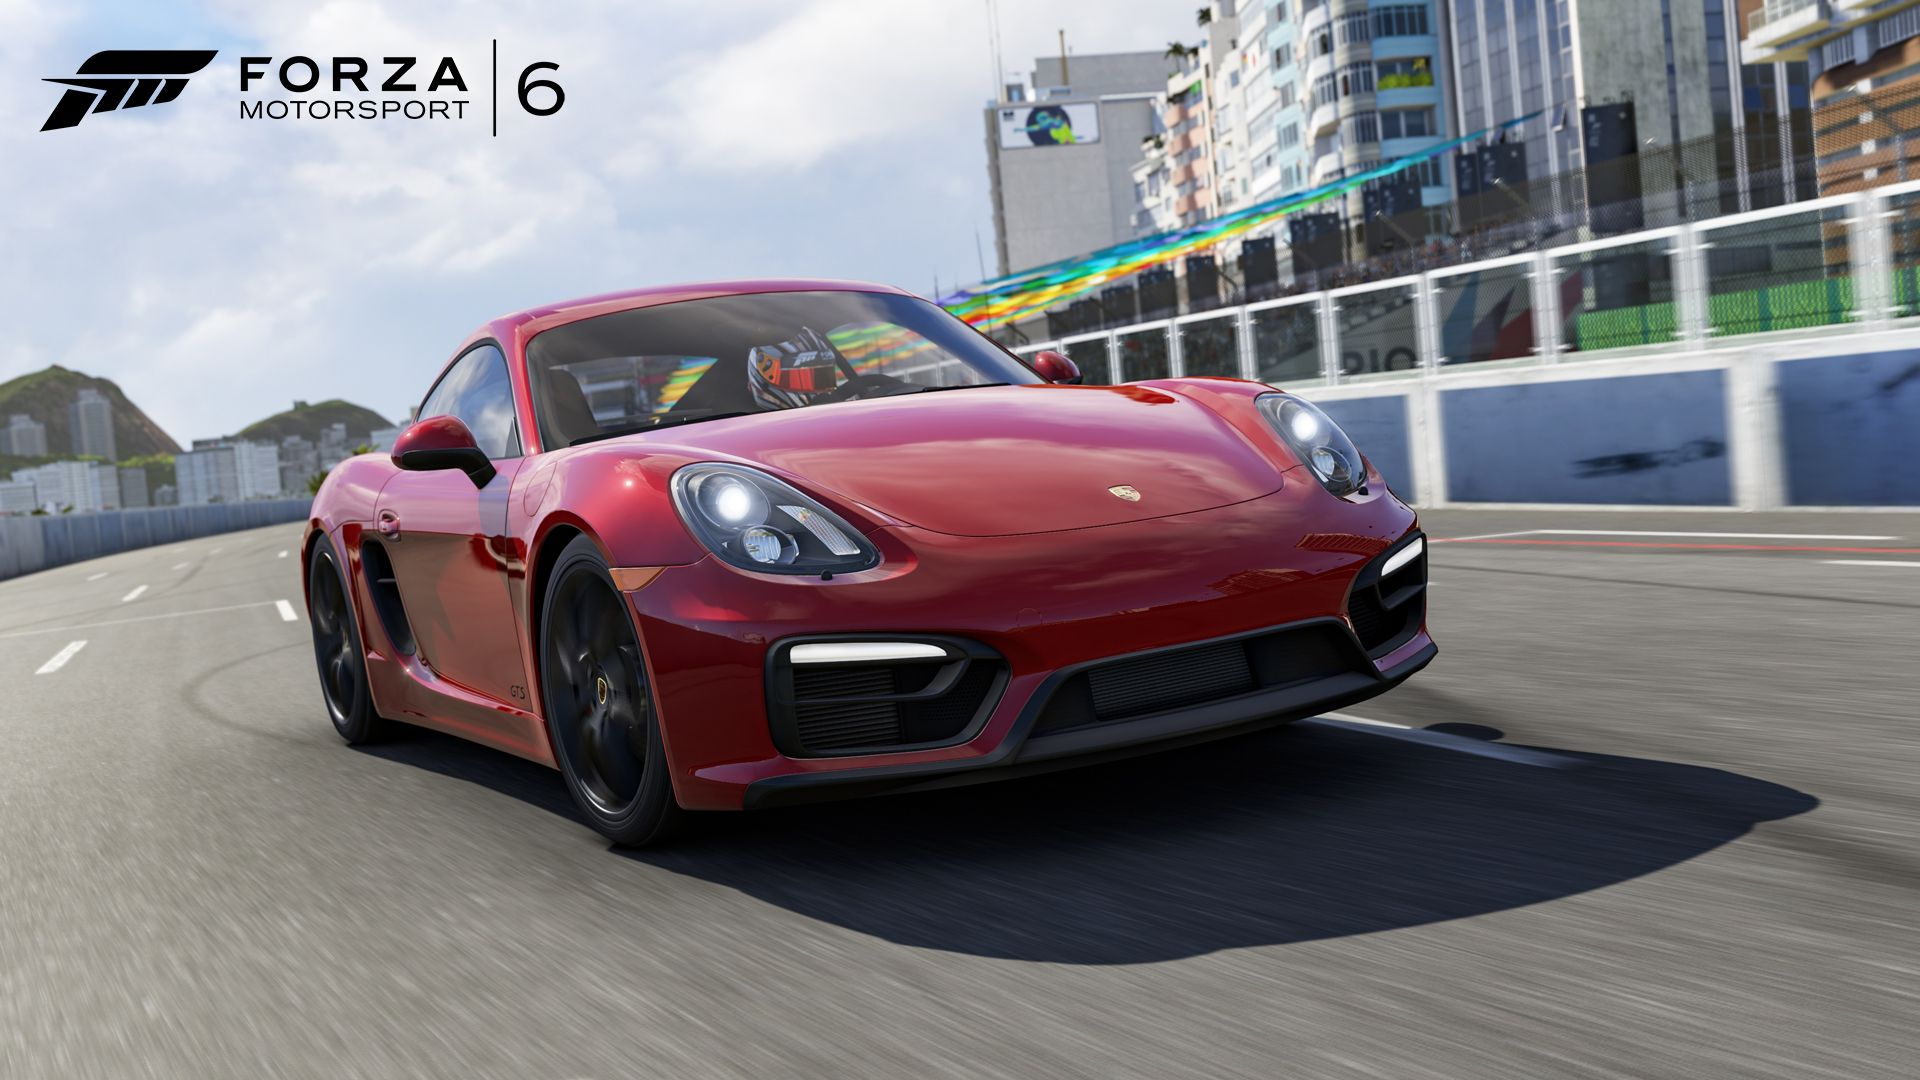 forza motorsport 6 39 s porsche expansion pack releases today trailer and screenshots inside. Black Bedroom Furniture Sets. Home Design Ideas